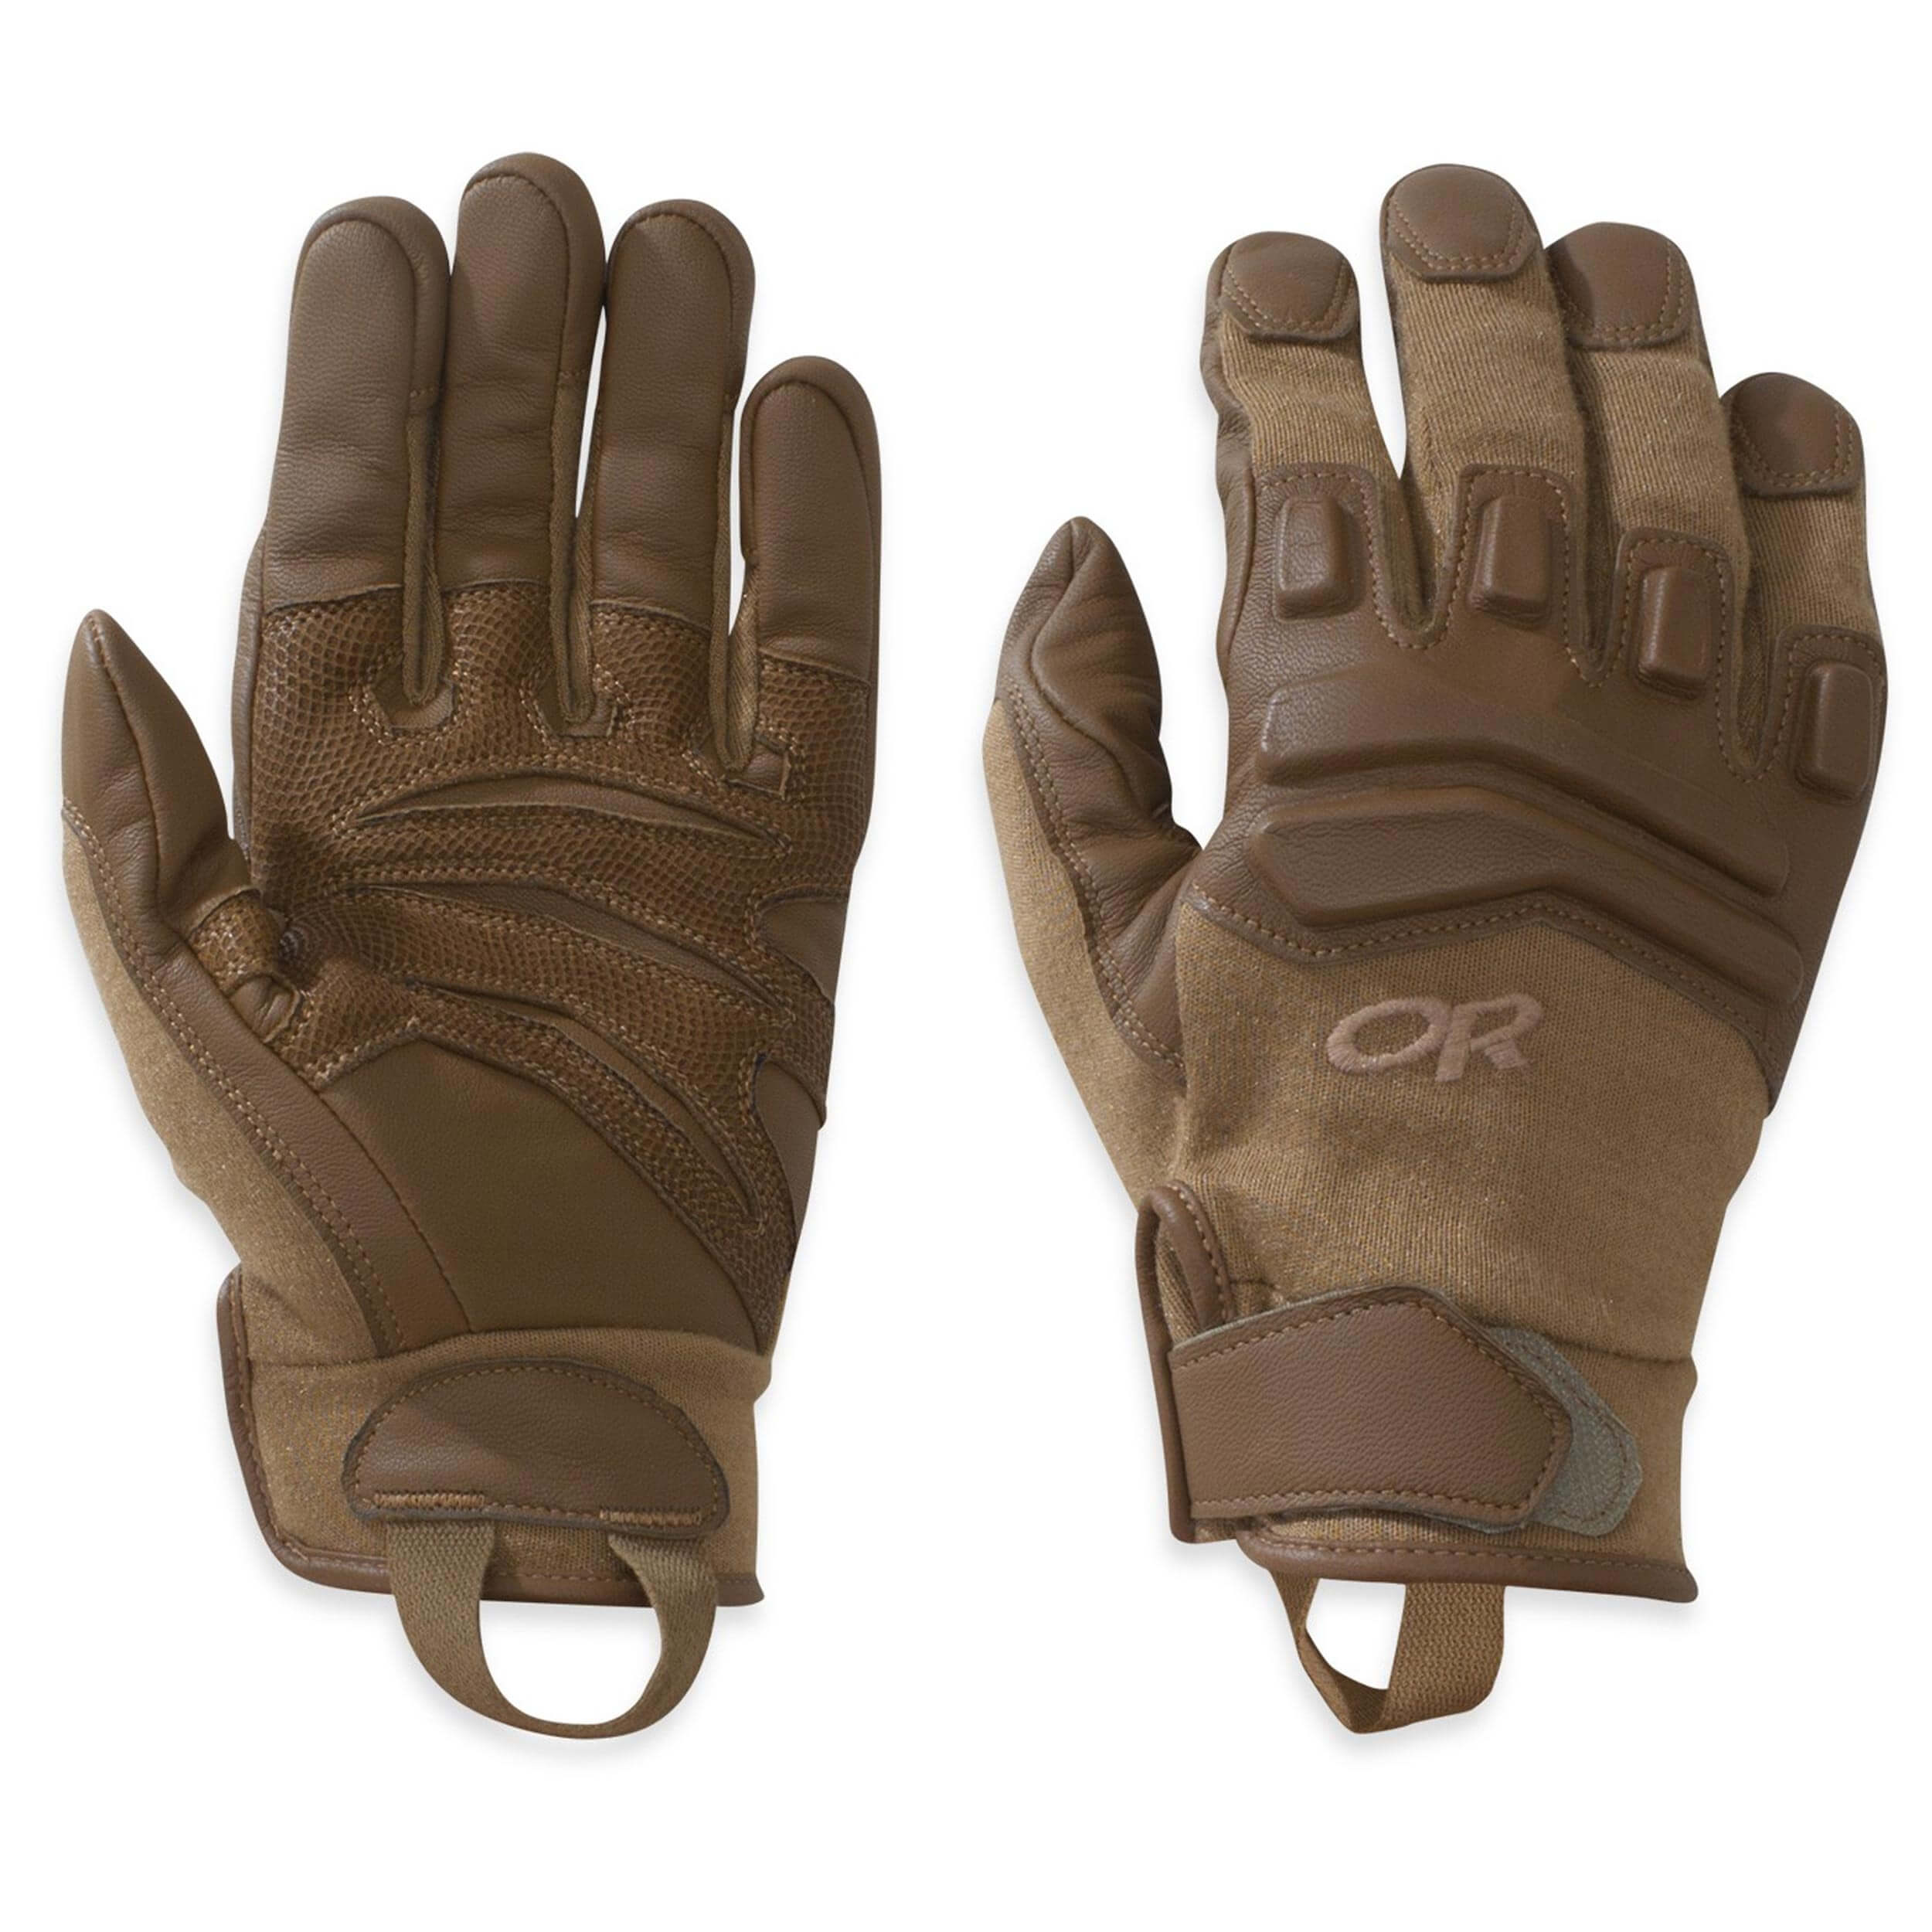 Outdoor Research Firemark Gloves coyote